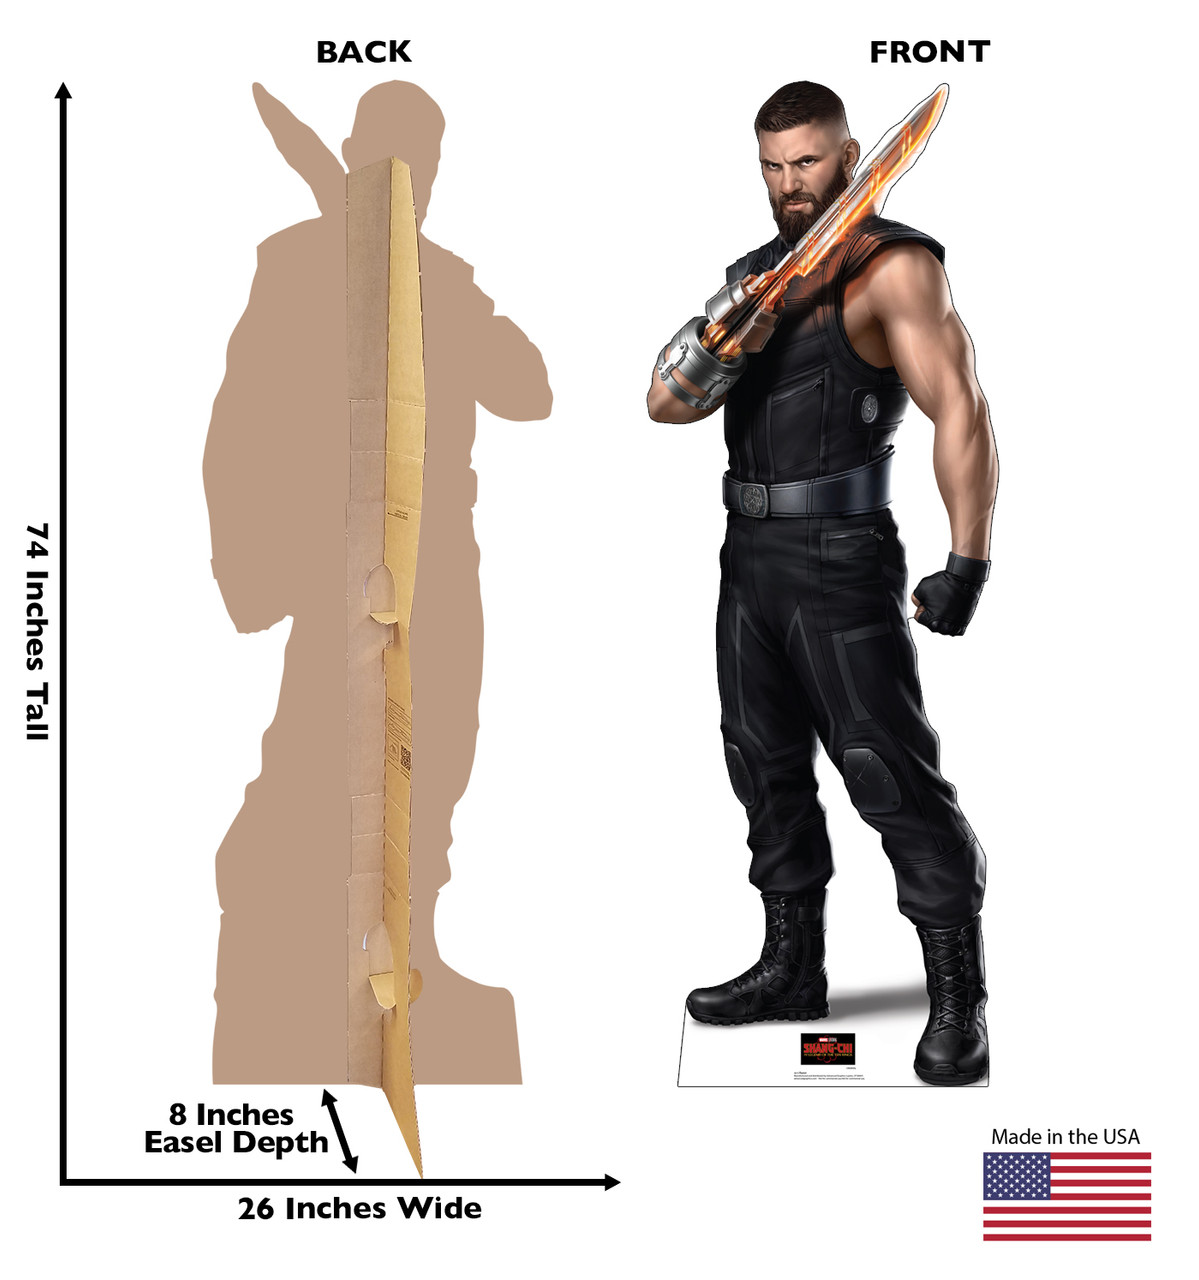 Life-size cardboard standee of Razor from Shang-Chi and the Legends of the Ten Rings from Marvel Studios with front and back dimensions.